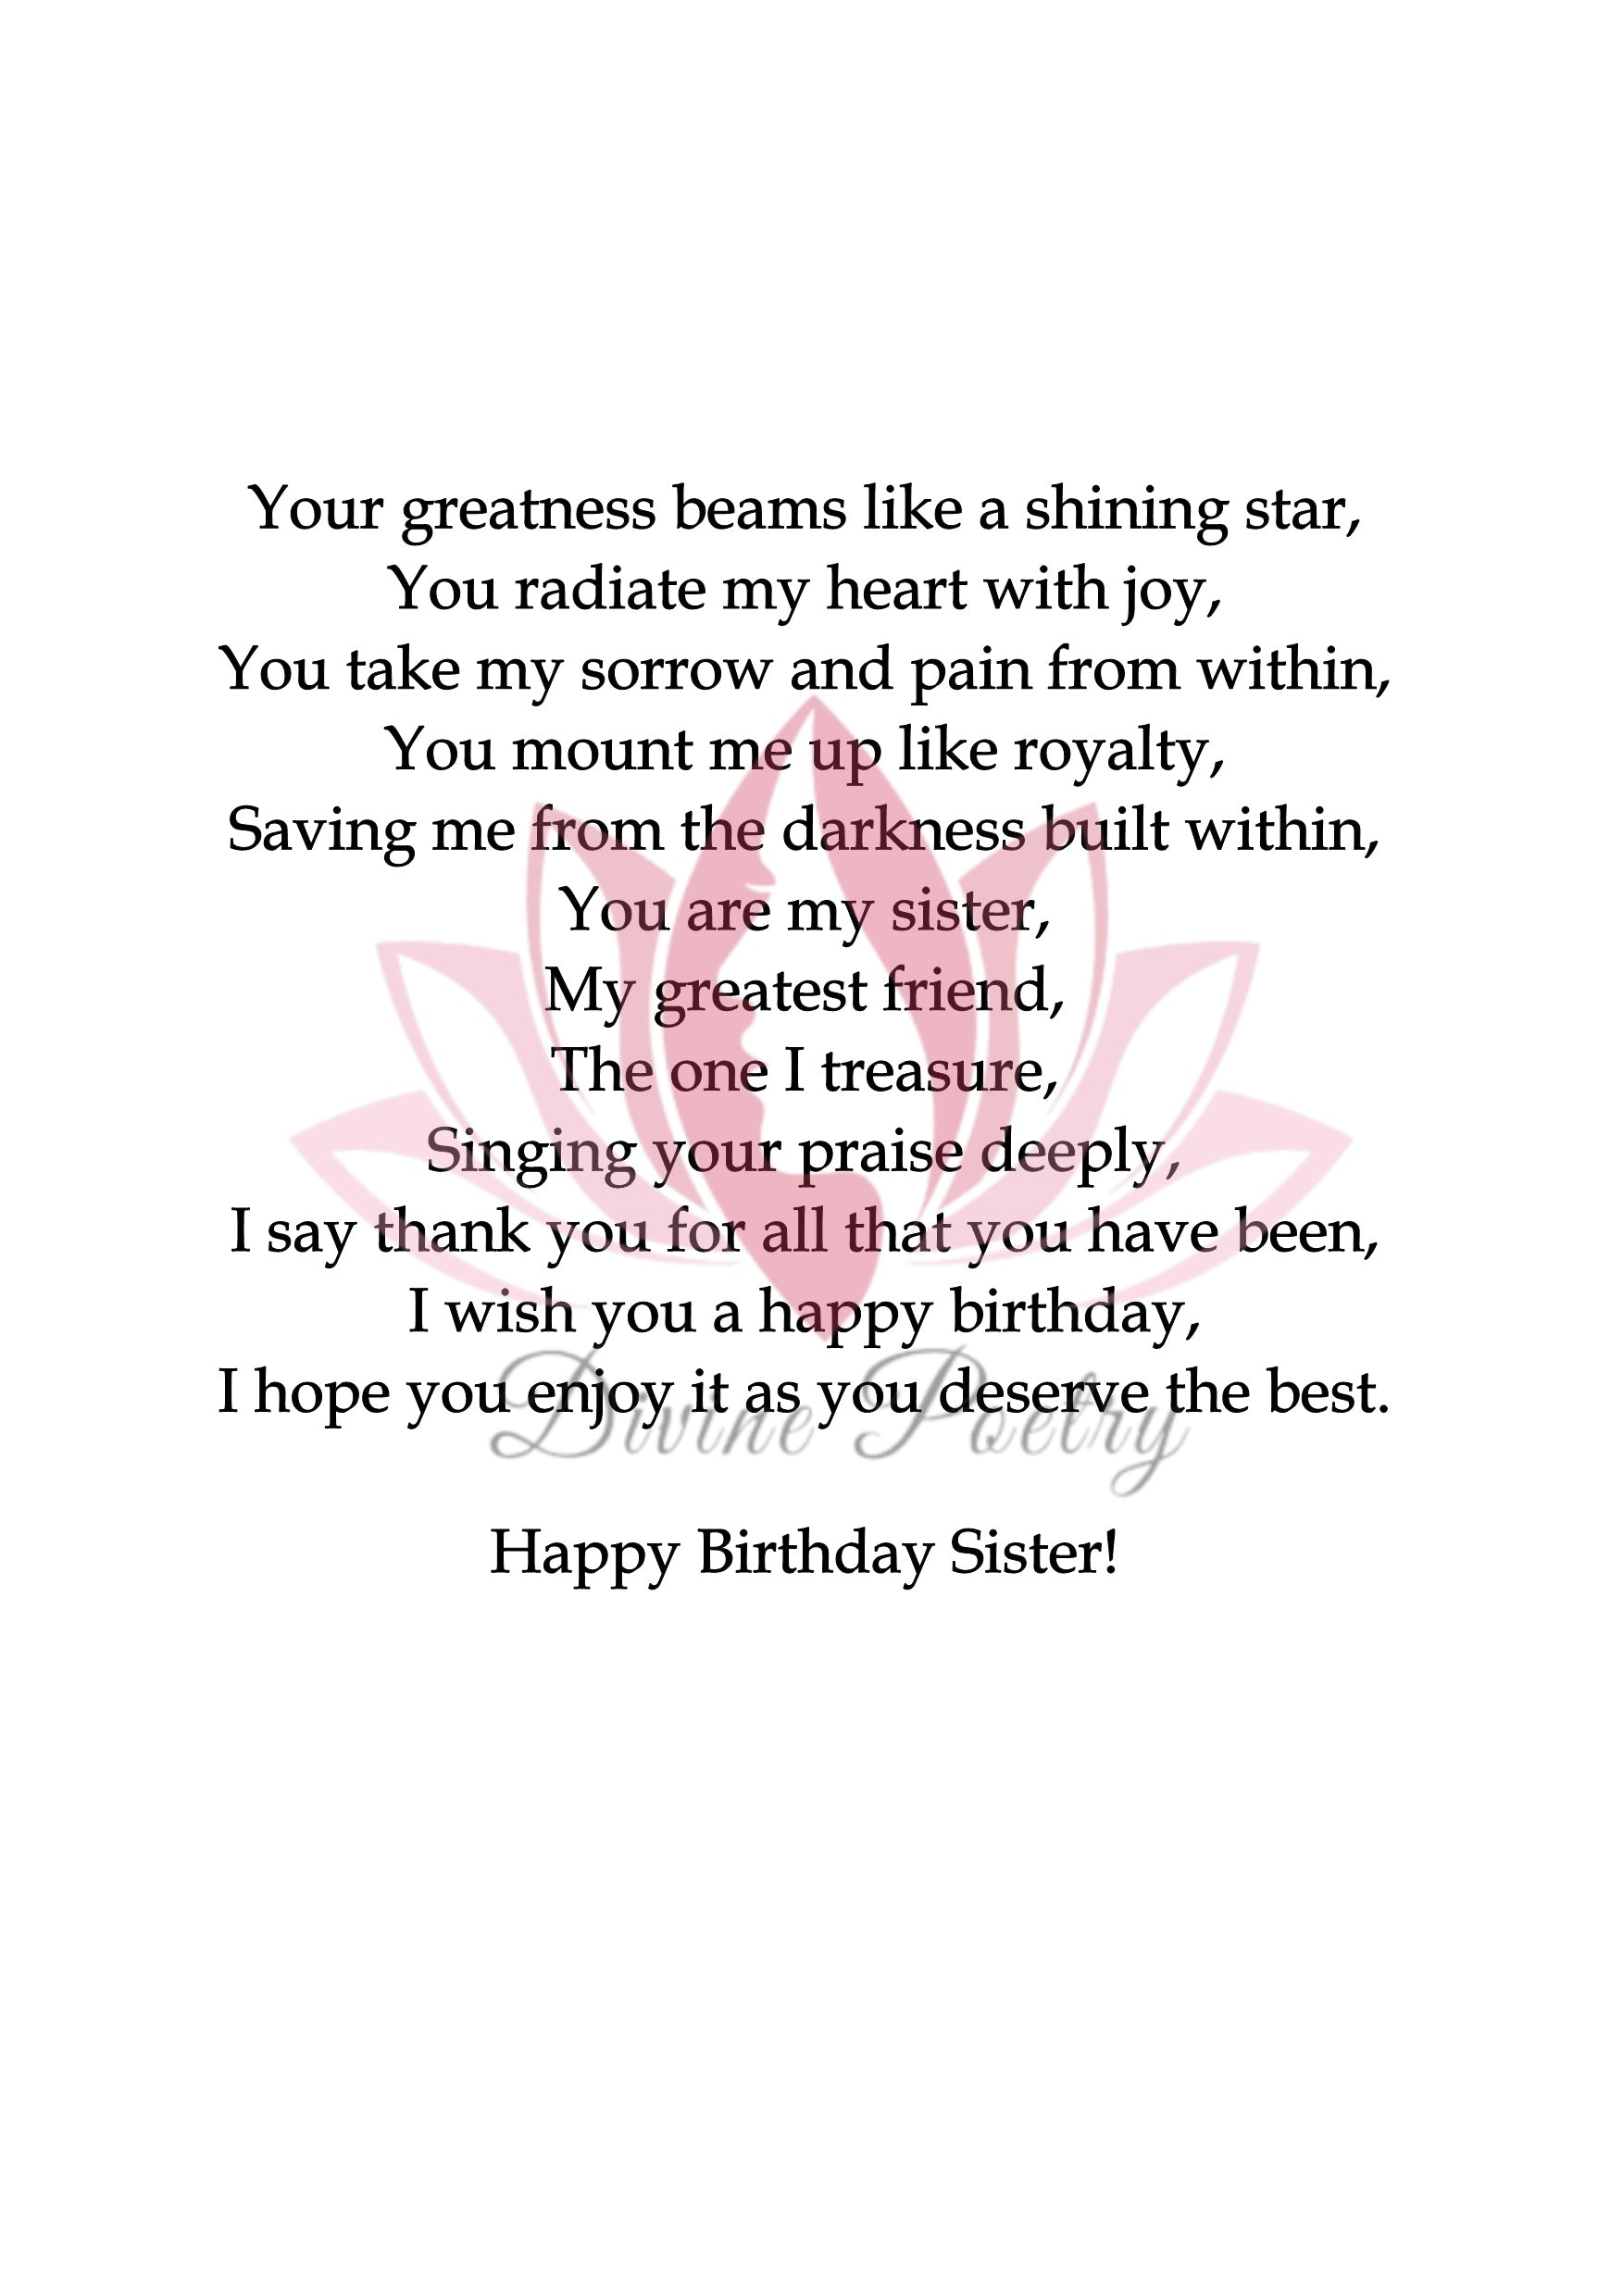 Happy Birthday Stepsister - Divine Poetry